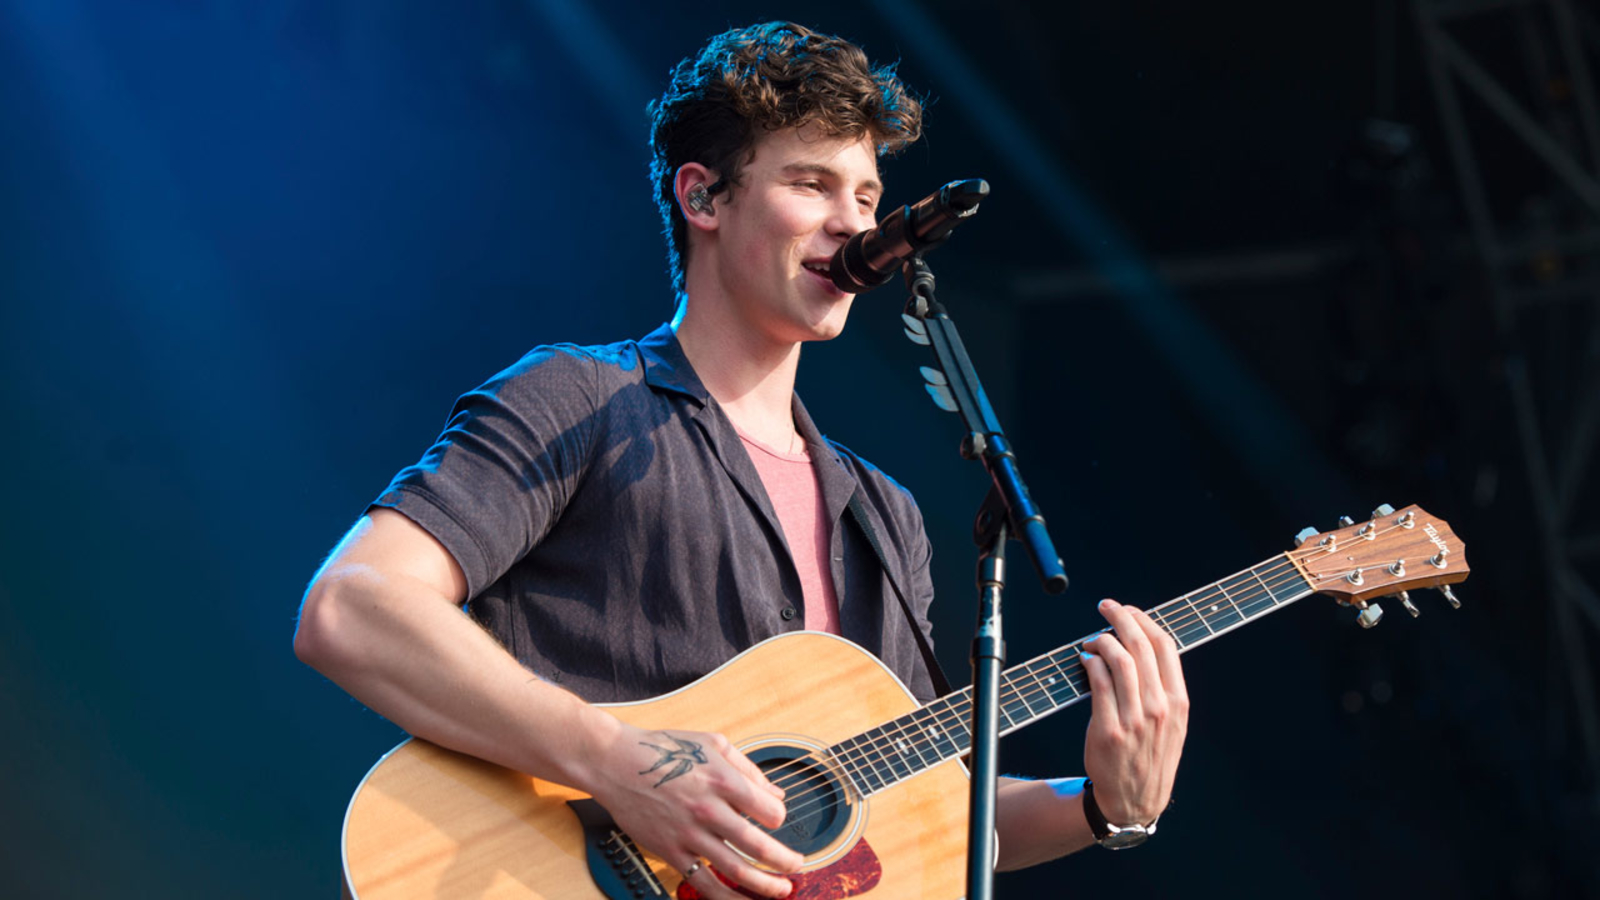 Free Shawn Mendes Concert Super Bowl Re Watch Party Highlight Nfl